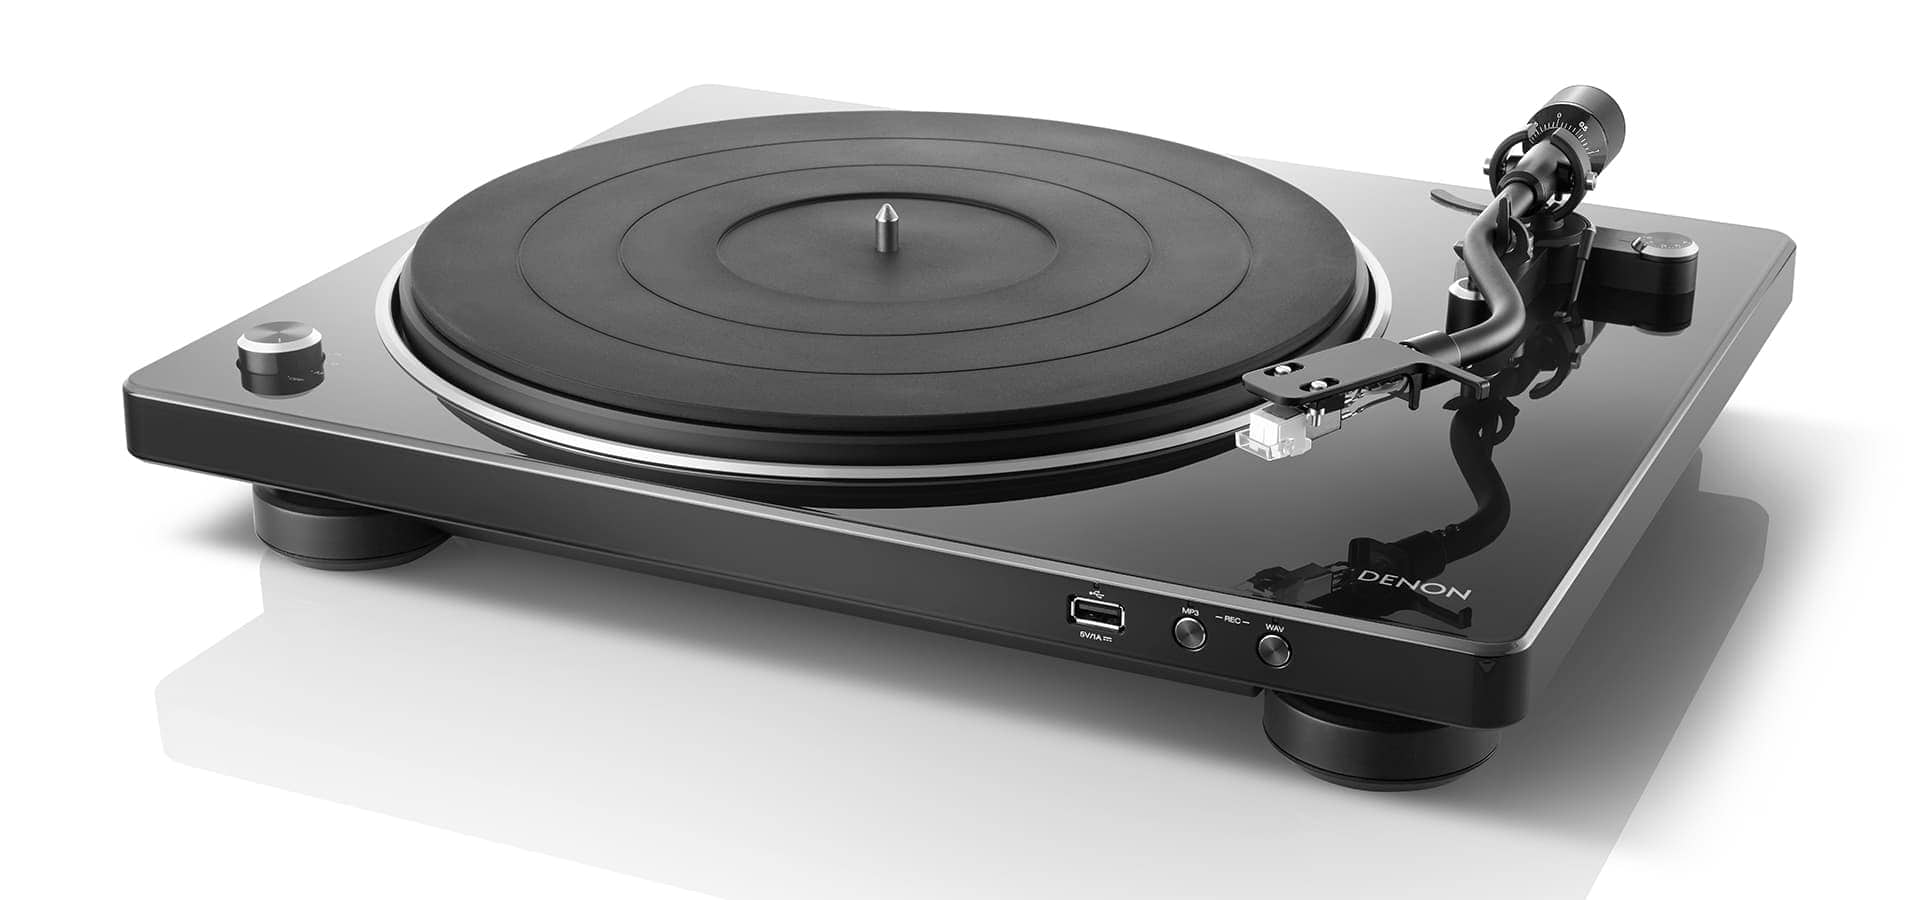 The Best USB Turntable